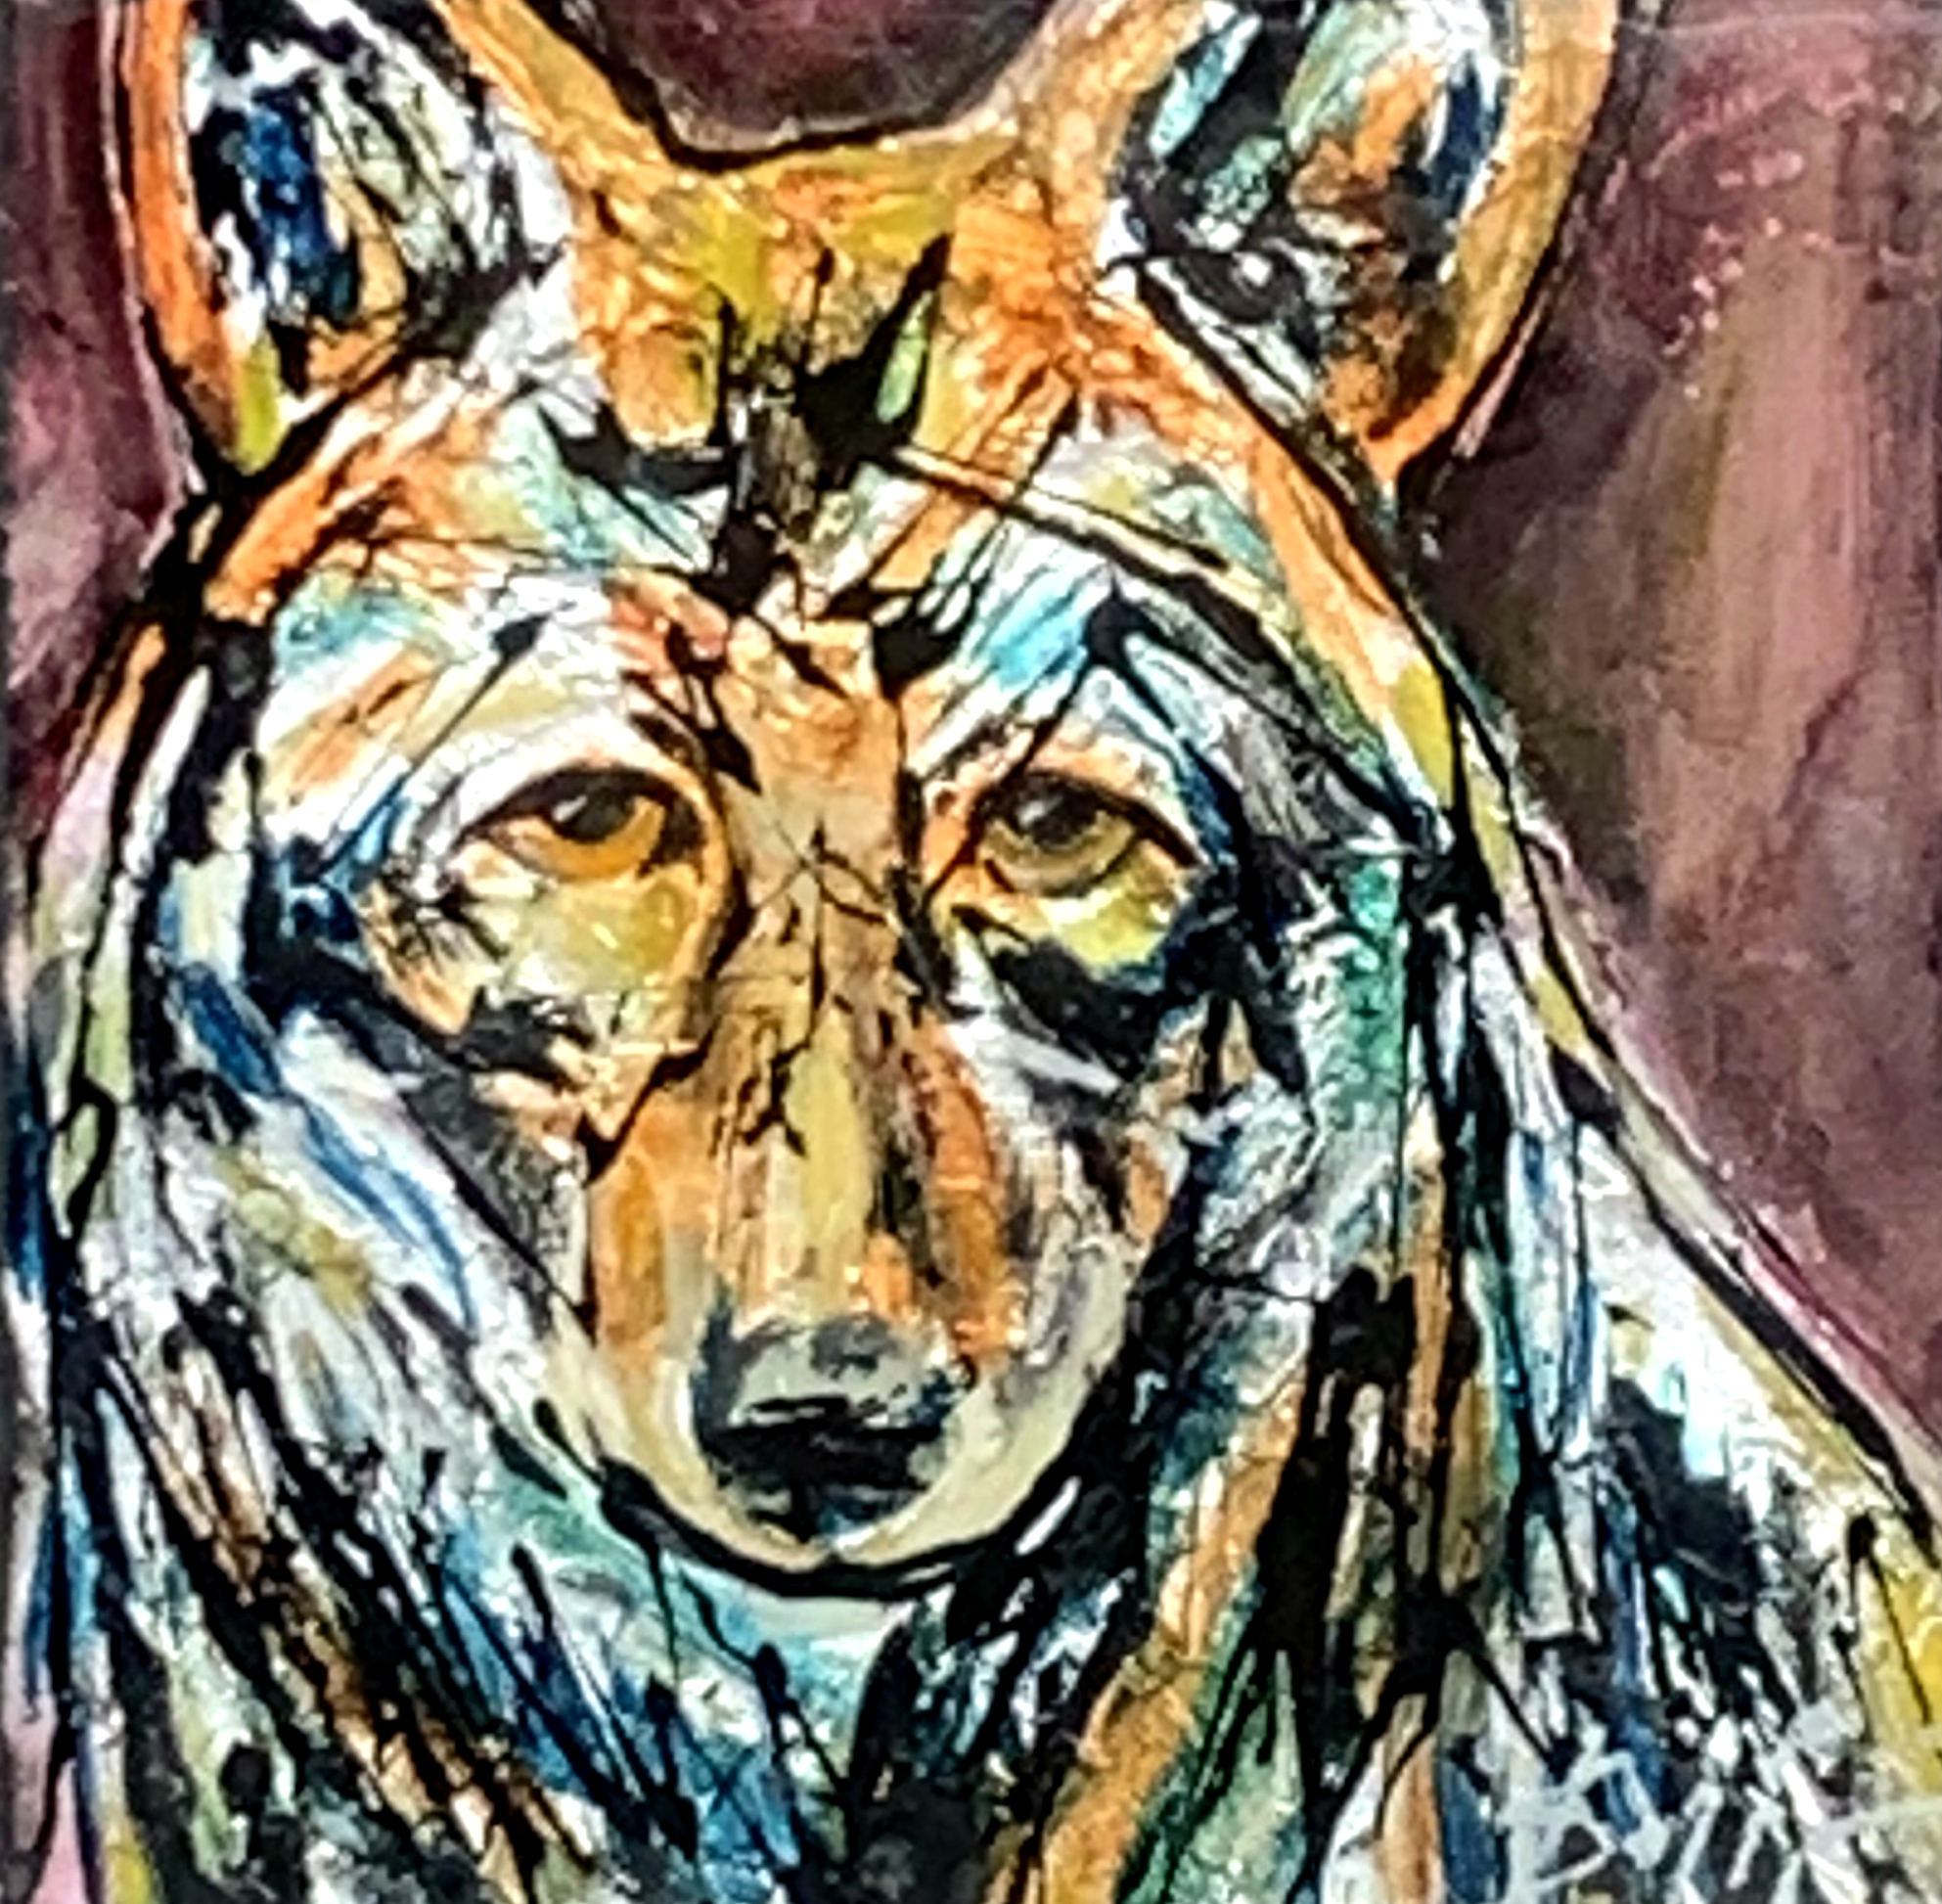 Canada 31, mixed media coyote painting by David Zimmerman | Effusion Art Gallery + Cast Glass Studio, Invermere BC